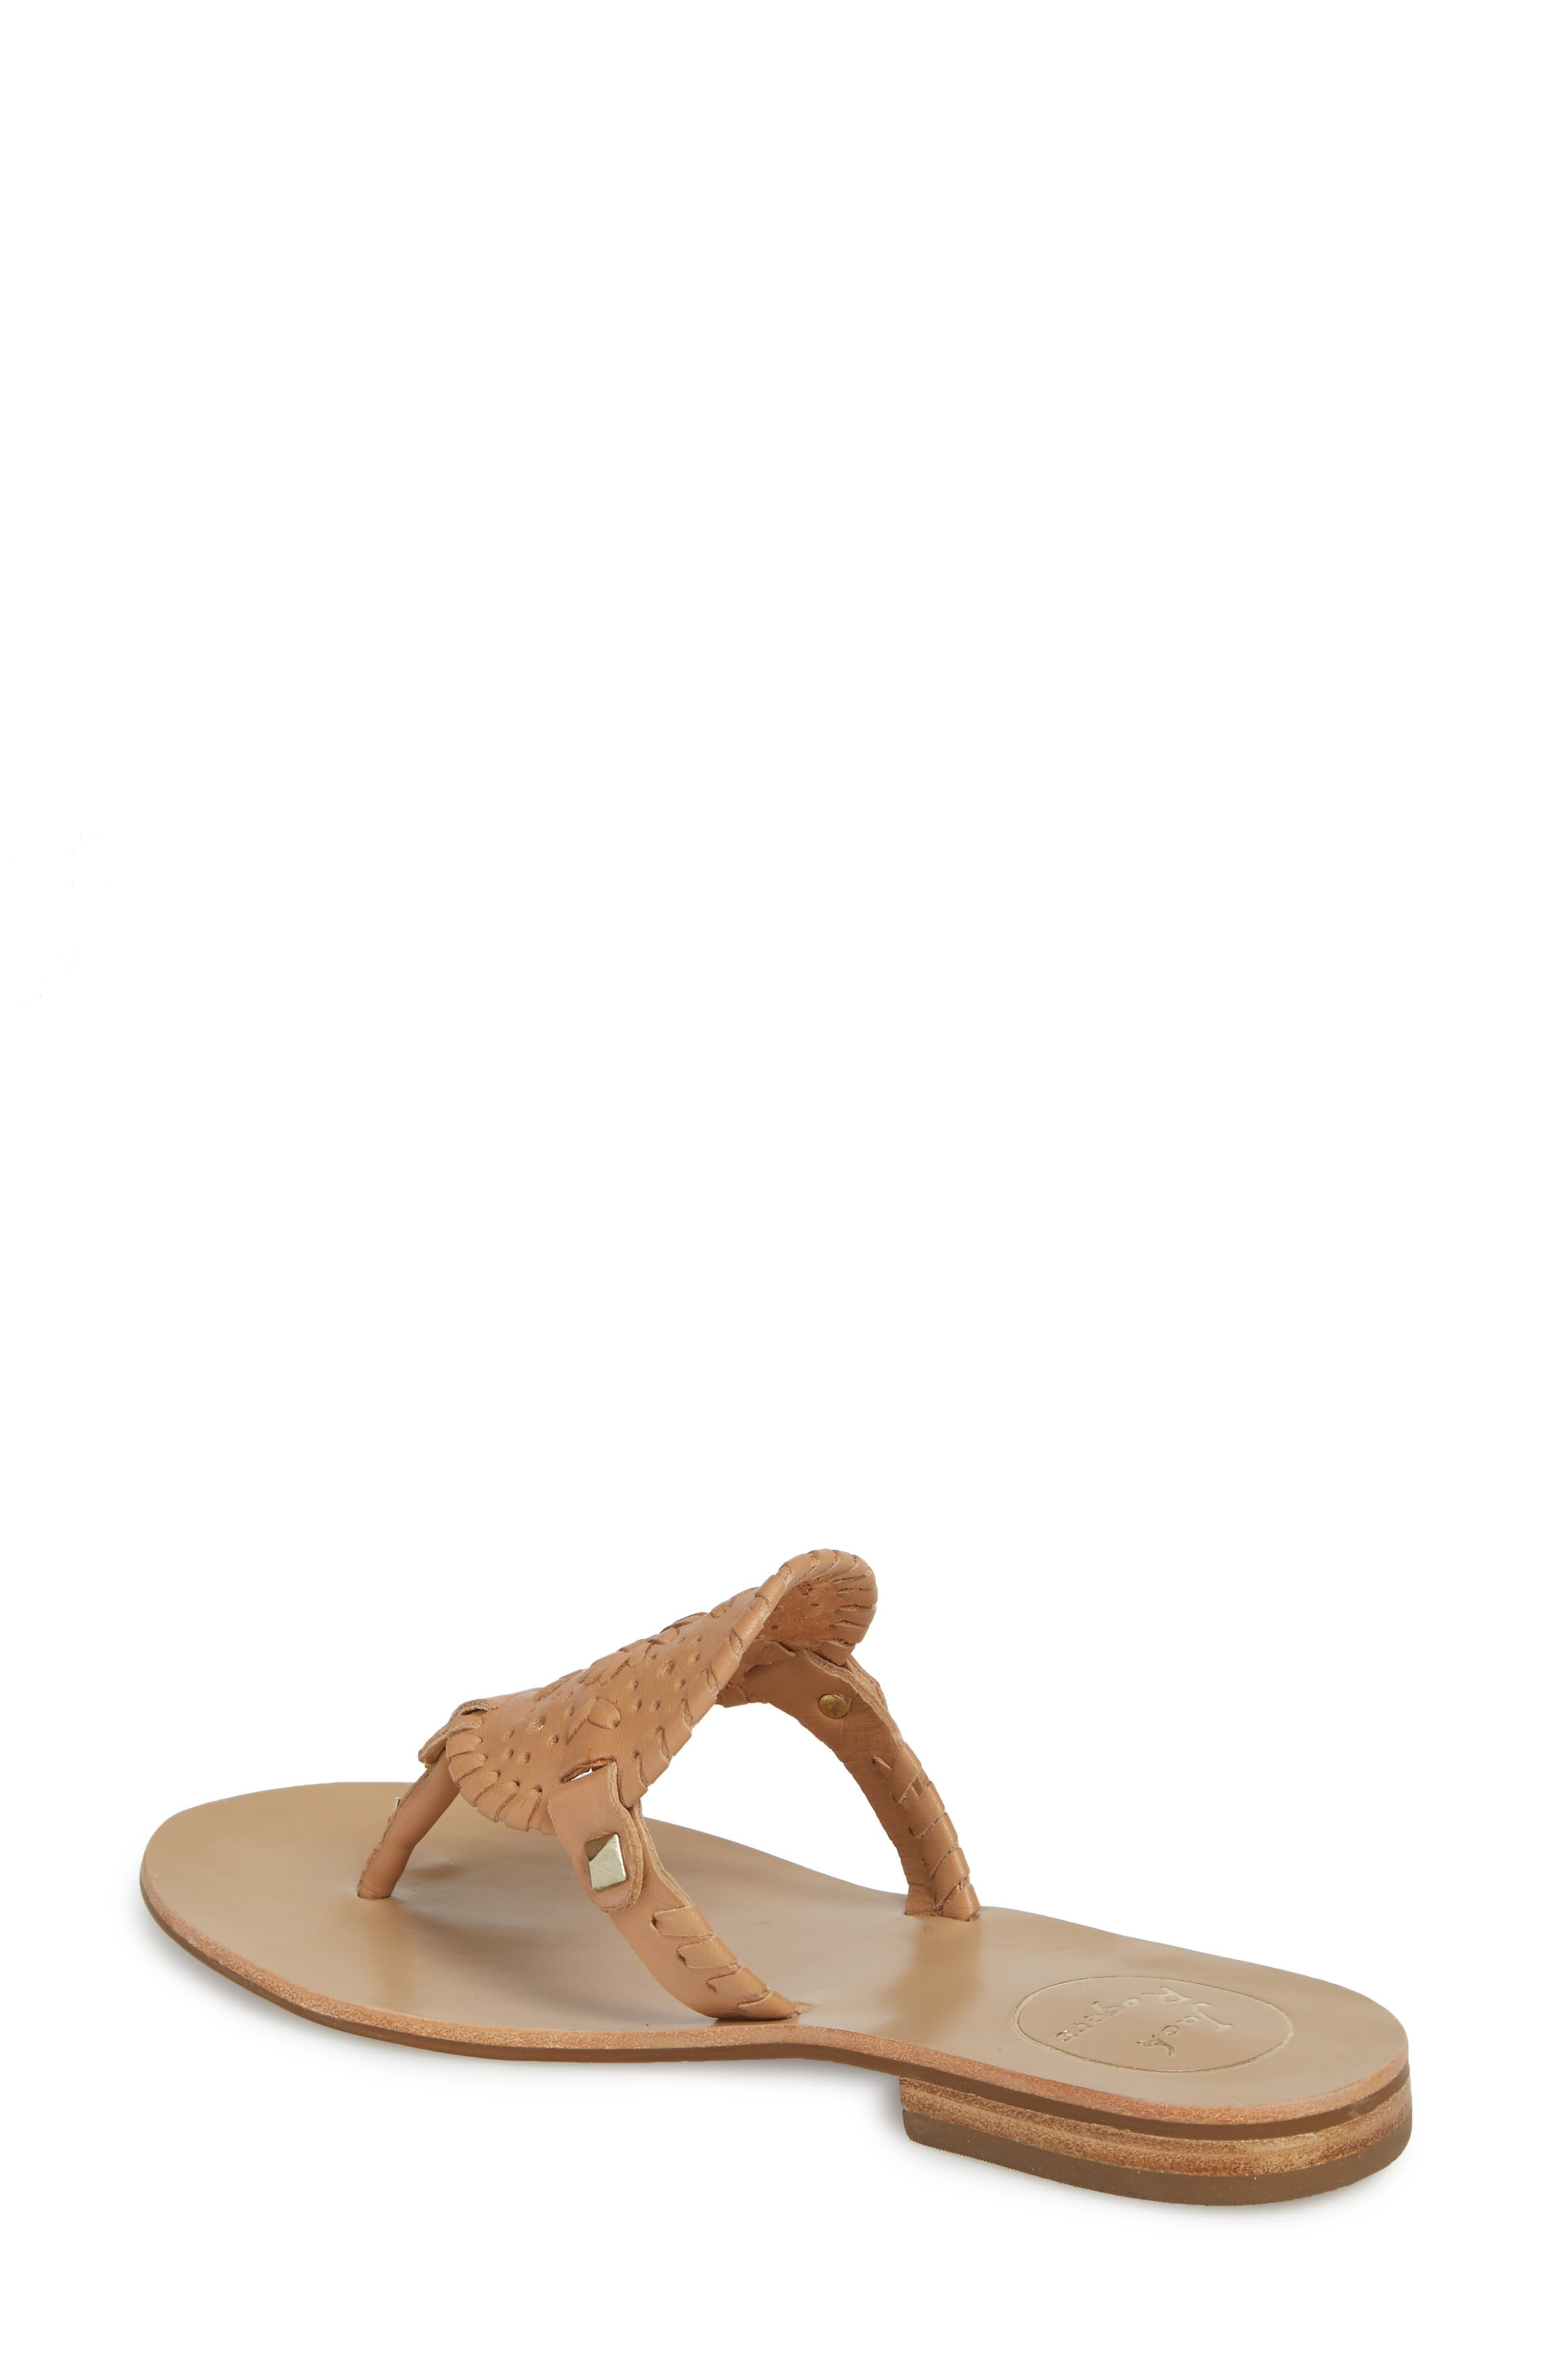 'Georgica' Sandals,                             Alternate thumbnail 2, color,                             Buff Leather